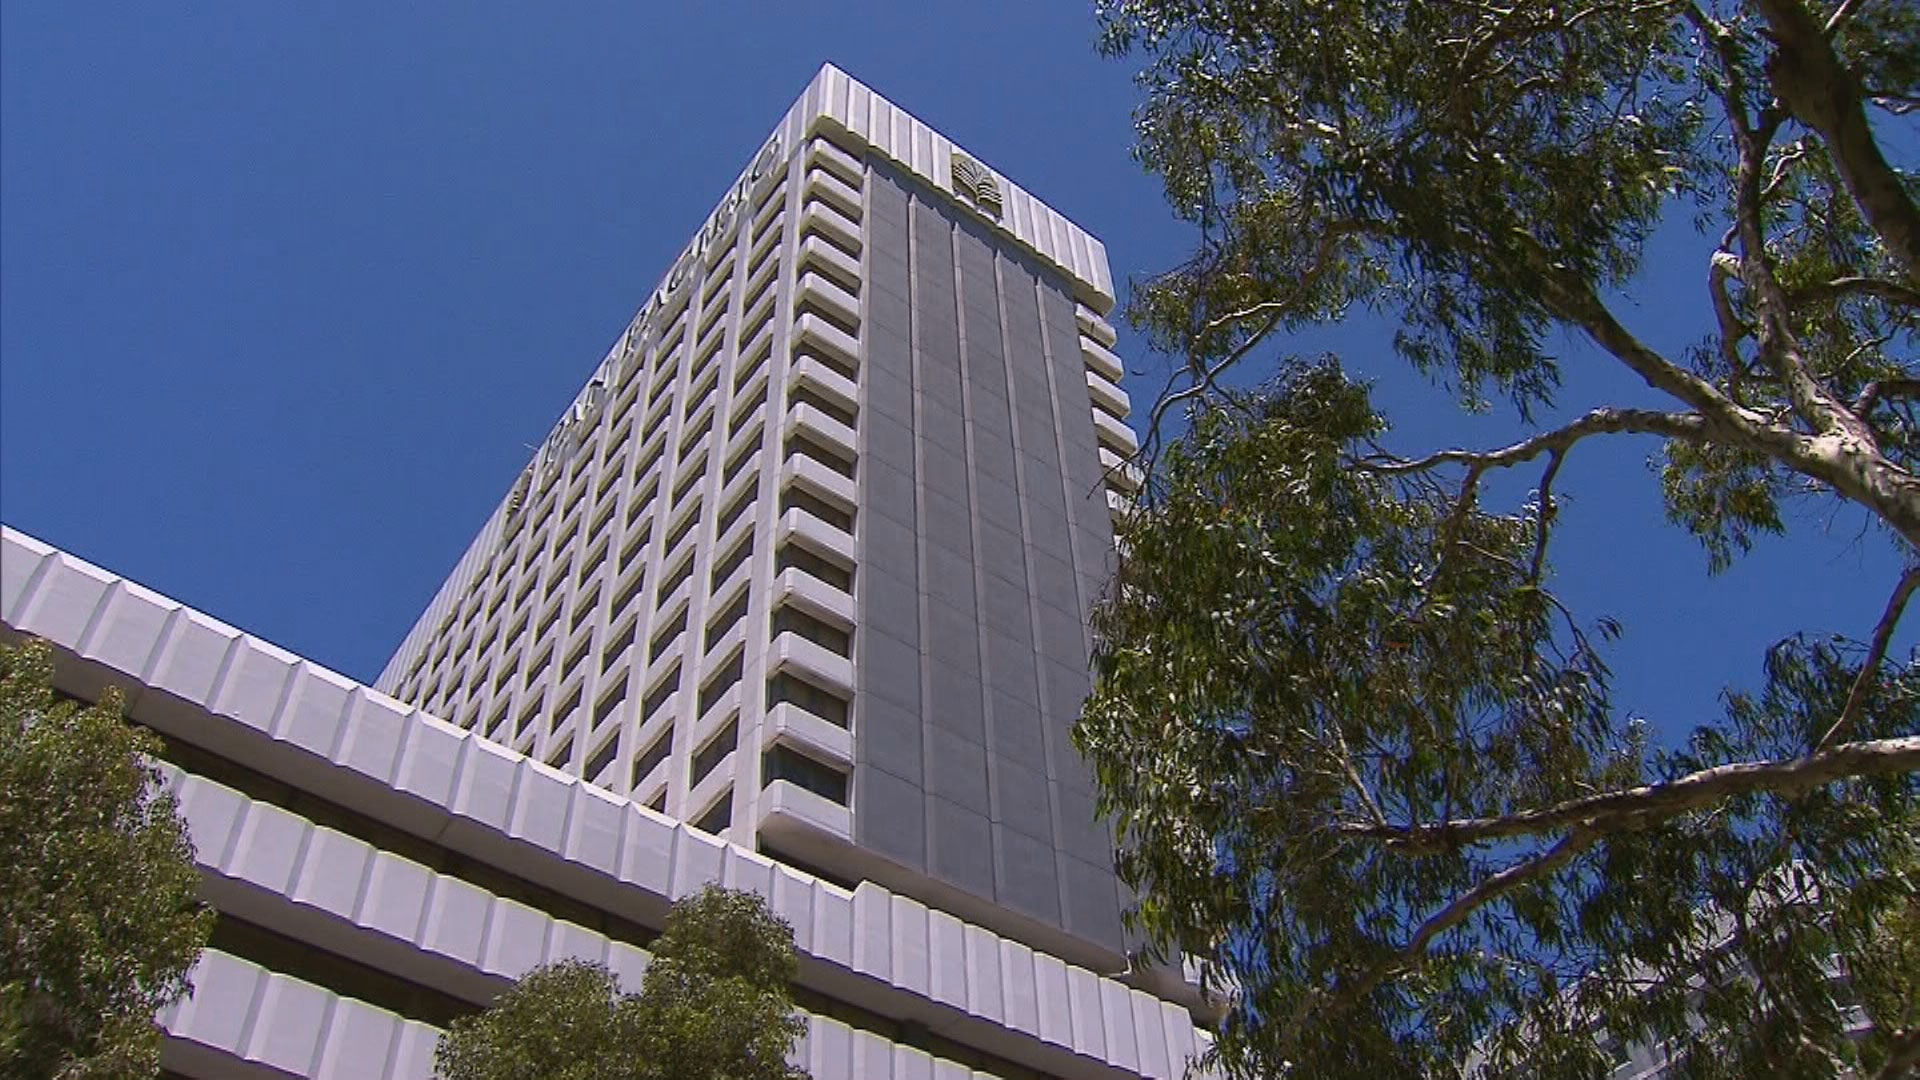 The Pan Pacific Hotel in Perth.